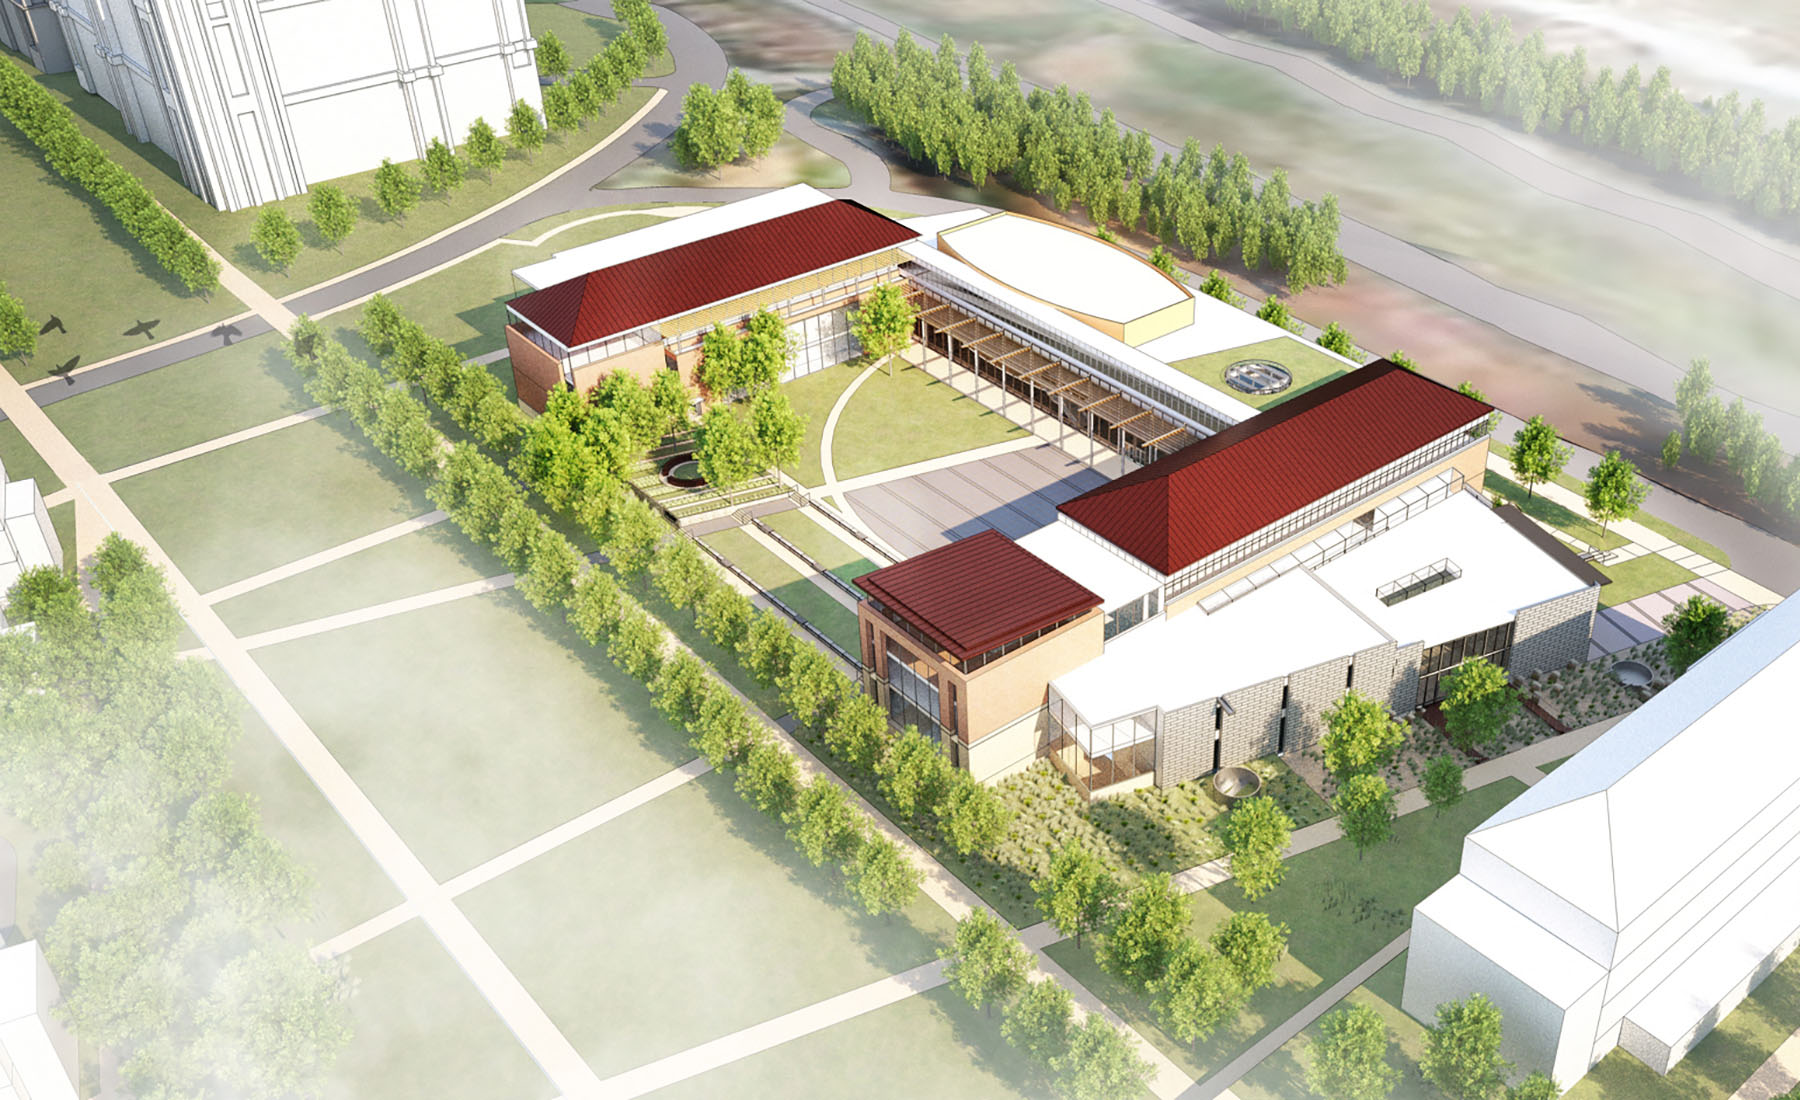 The new 162,000 SF School of Engineering and Computational Sciences will serve as the basis of a new Innovation Campus for Liberty University that supports dynamic, interactive, and hands-on learning opportunities within a collaborative environment.